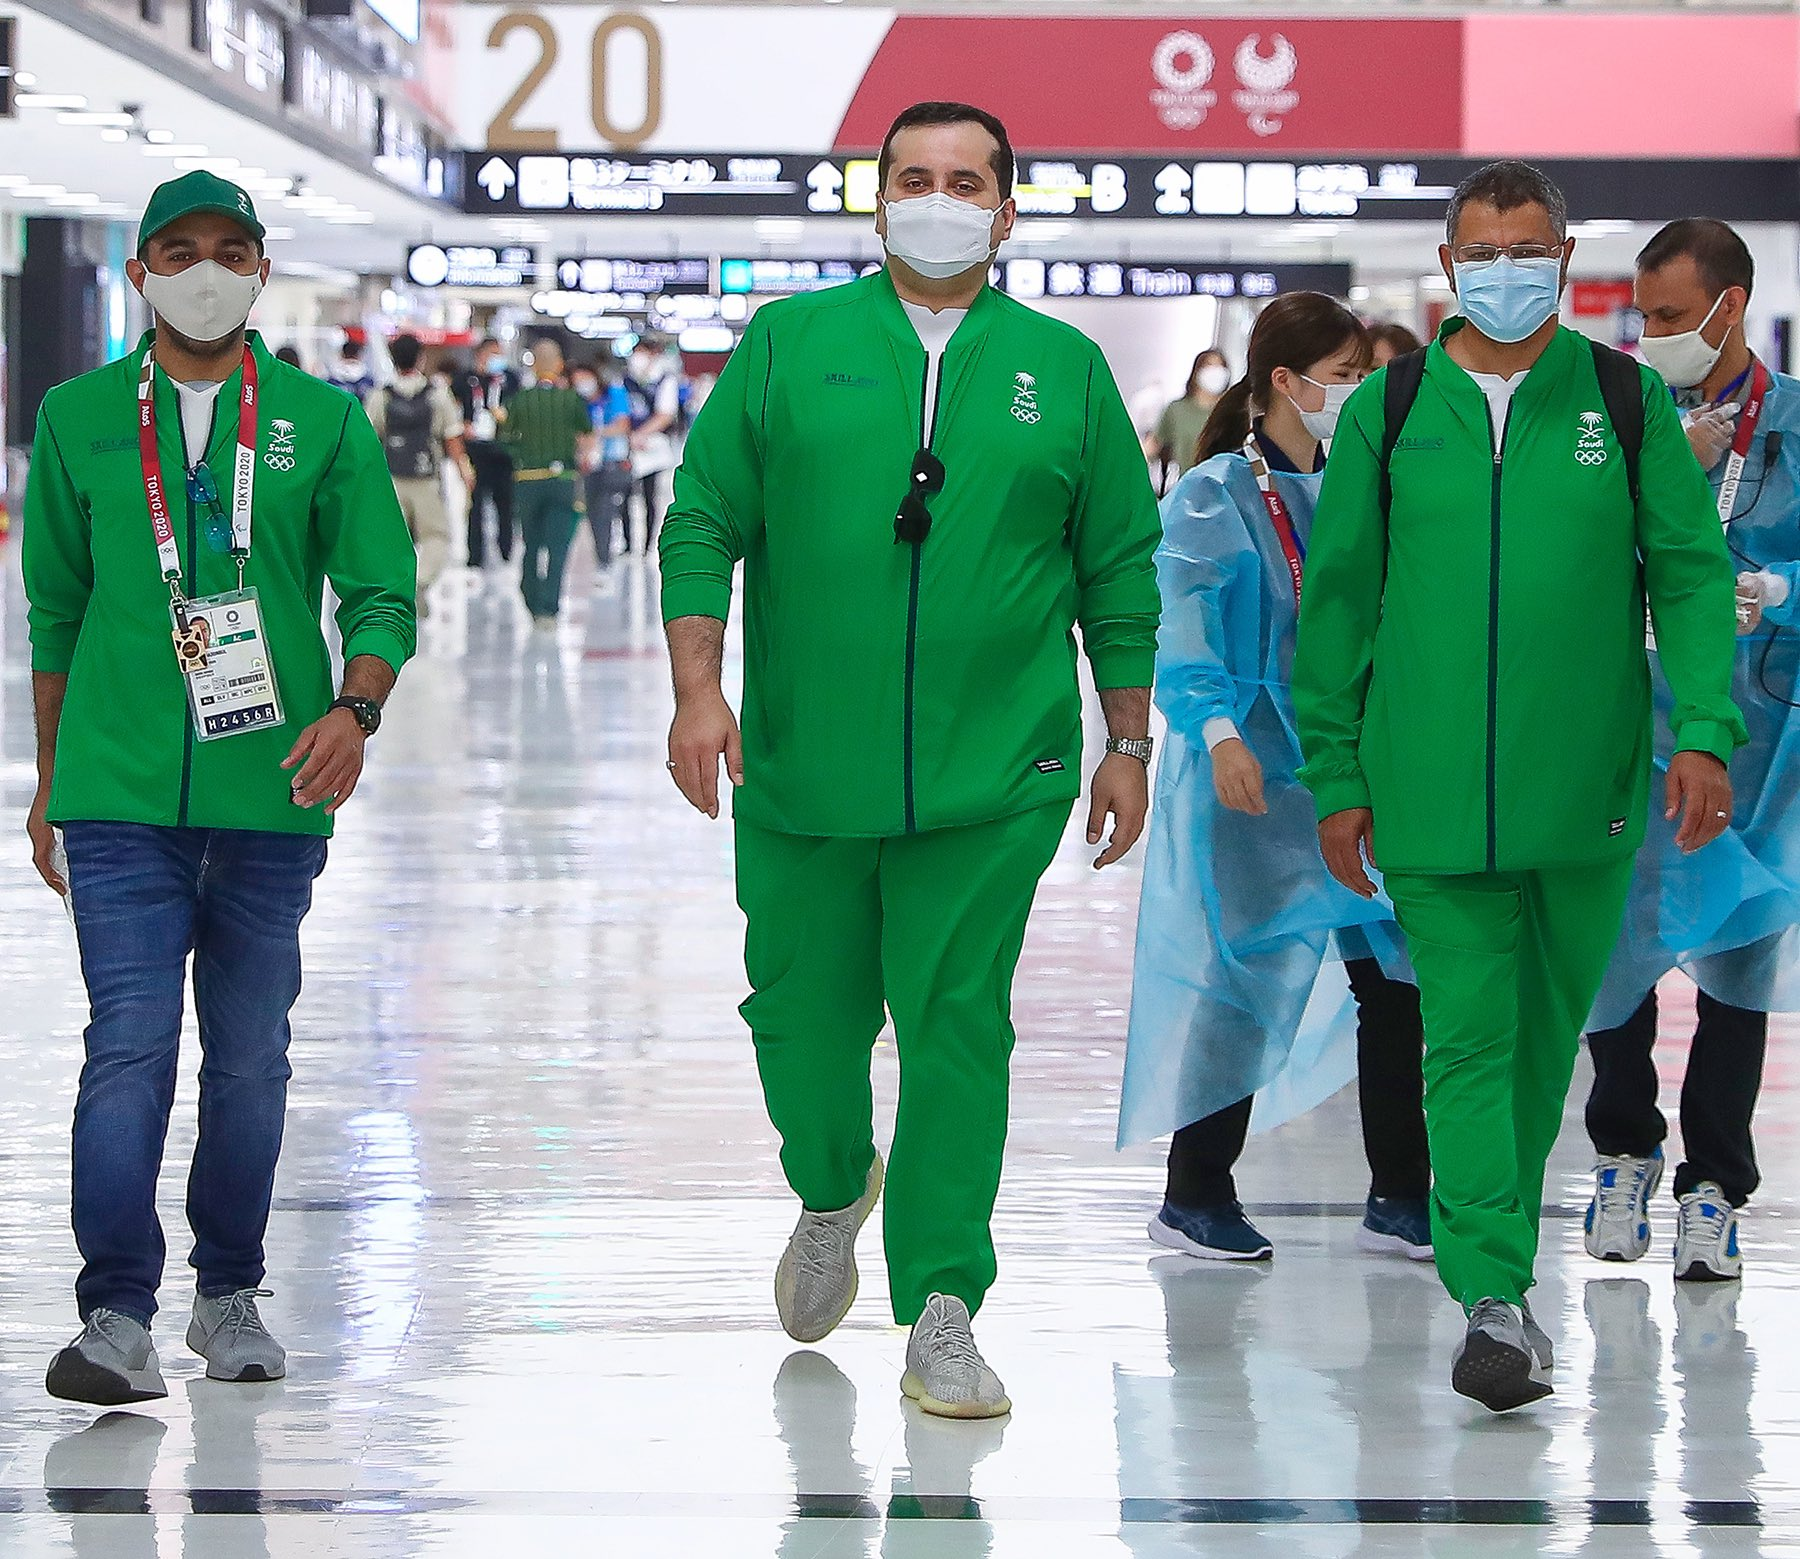 Saudi Olympic football team arrive in Tokyo for the Olympic games. (Twitter/@saudiolympic)